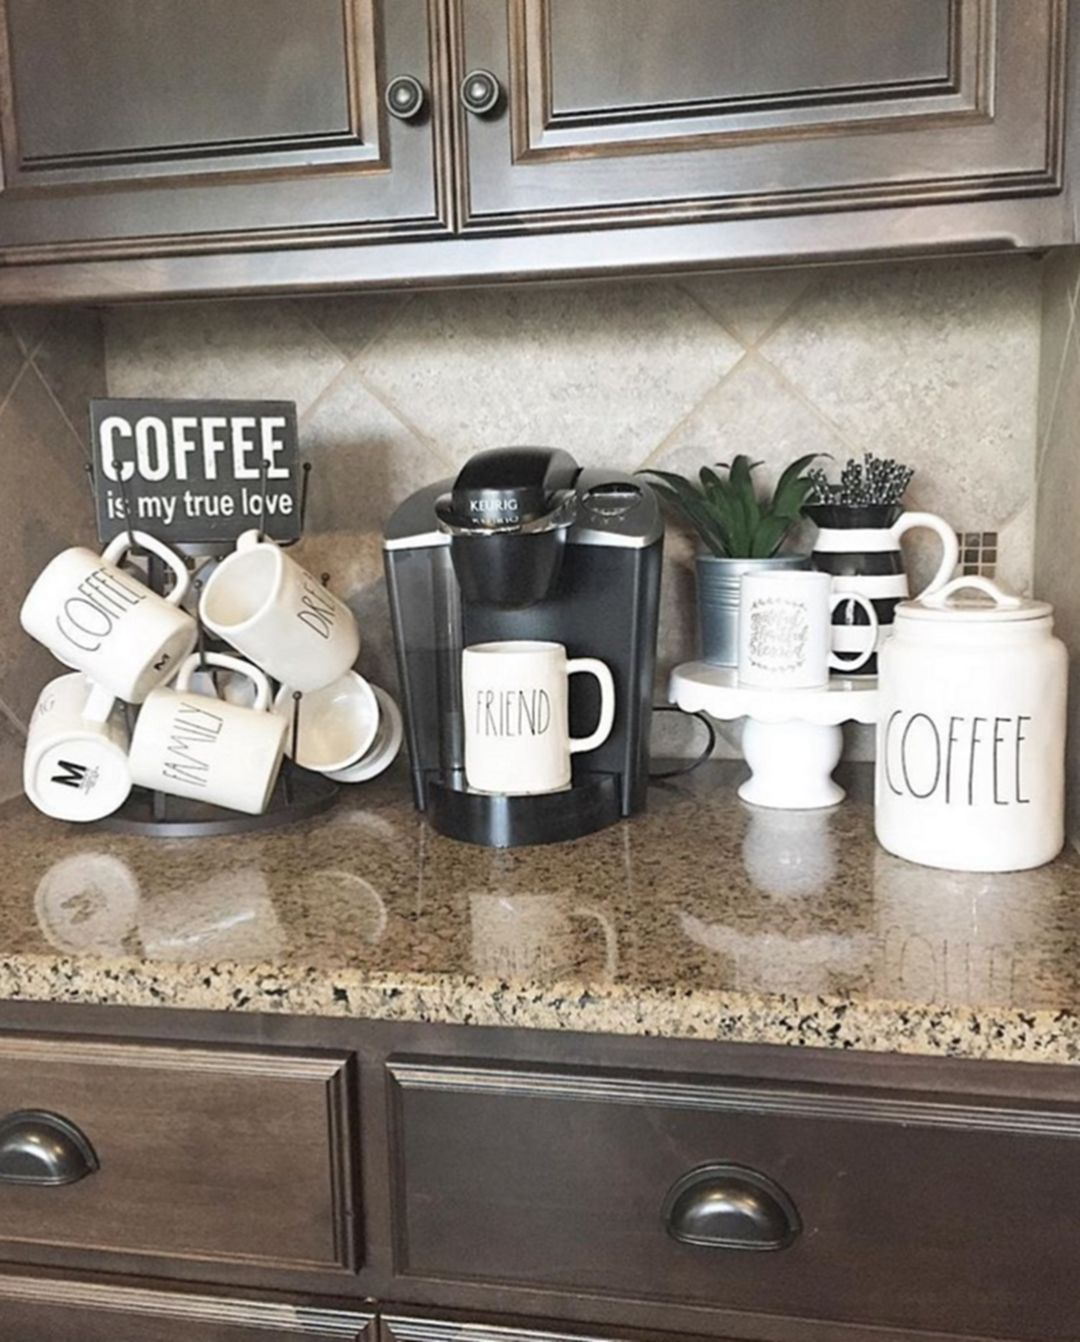 Phenomenon 75 Elegant Home Coffee Bar Design And Decor Ideas You Must Have In Your House Https Decoor Net 7 Coffee Bar Design Coffee Bar Home Coffee Kitchen